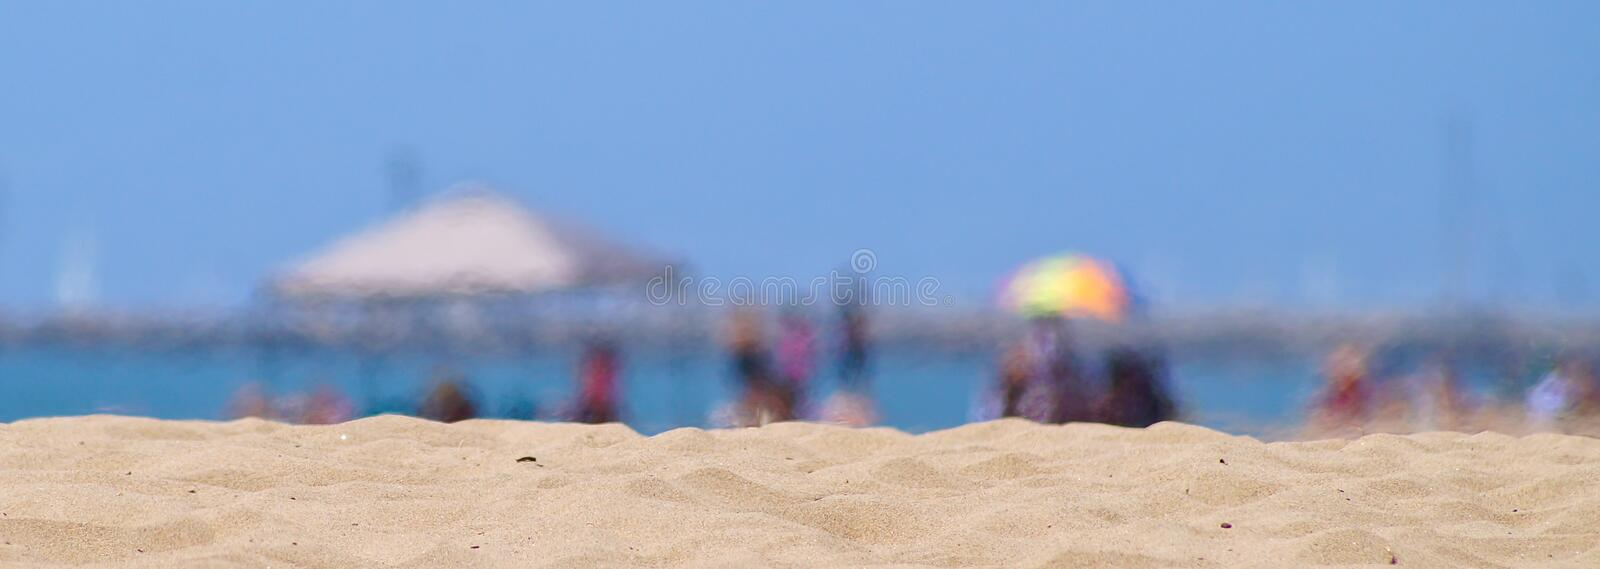 Blurry Heat Waves at the Beach royalty free stock photography